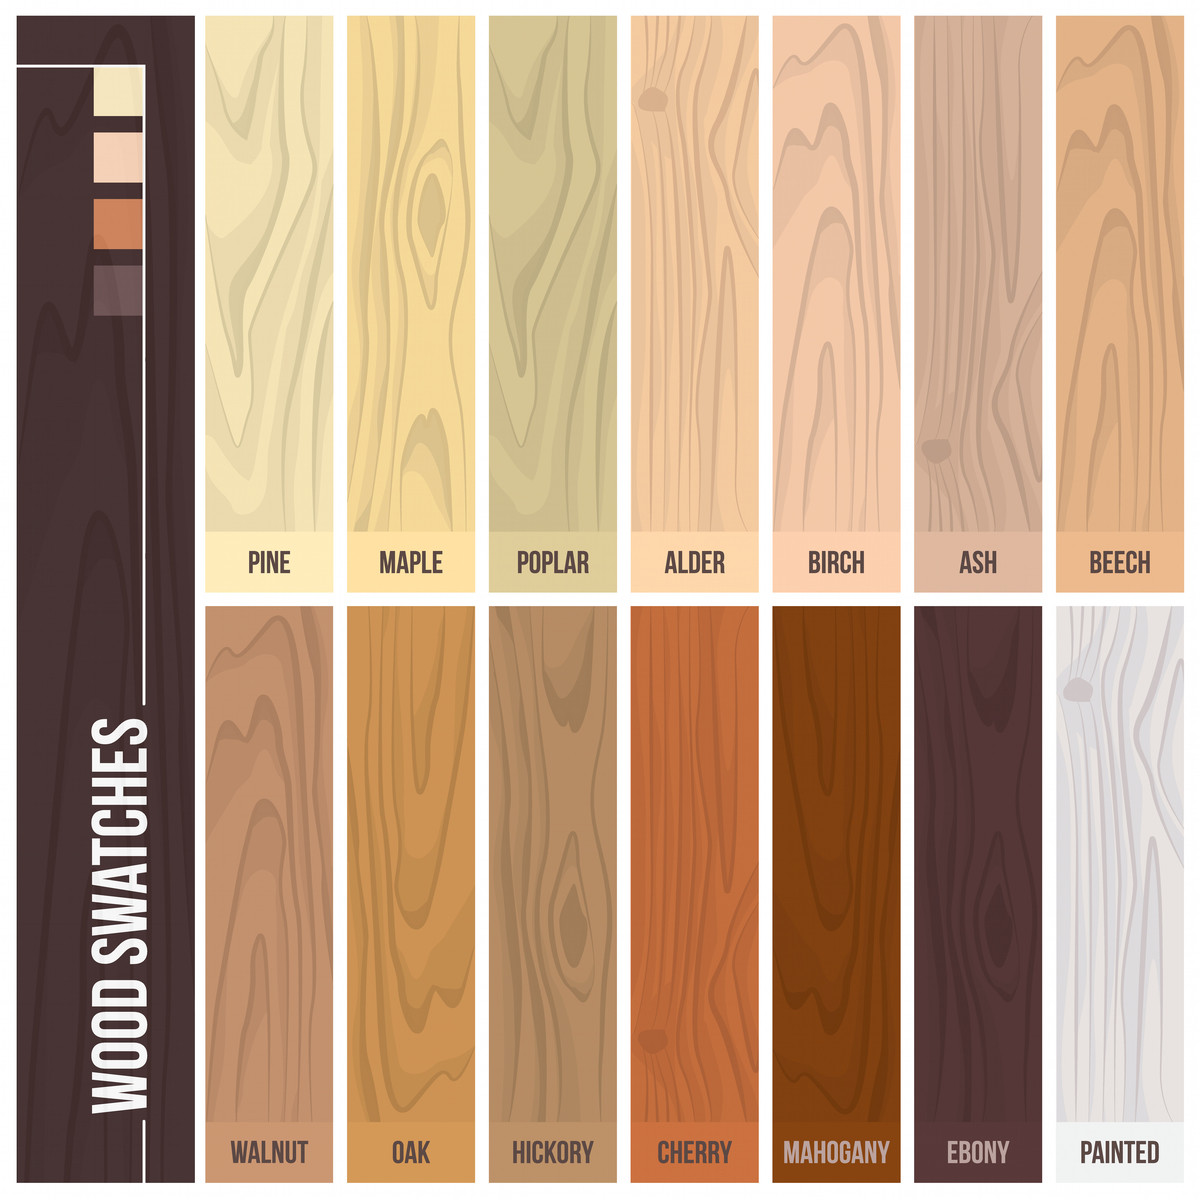 Best Place to Buy Hardwood Flooring Online Of 12 Types Of Hardwood Flooring Species Styles Edging Dimensions Intended for Types Of Hardwood Flooring Illustrated Guide